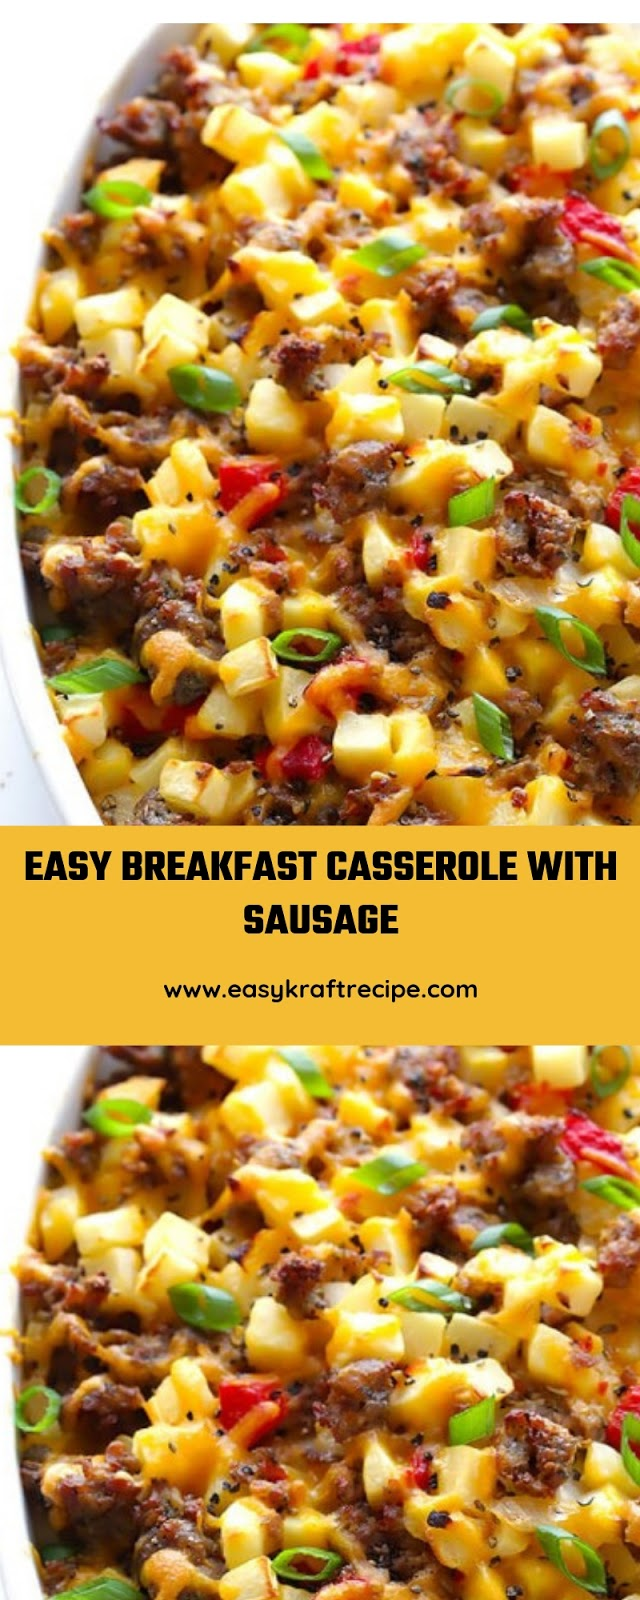 EASY BREAKFAST CASSEROLE WITH SAUSAGE